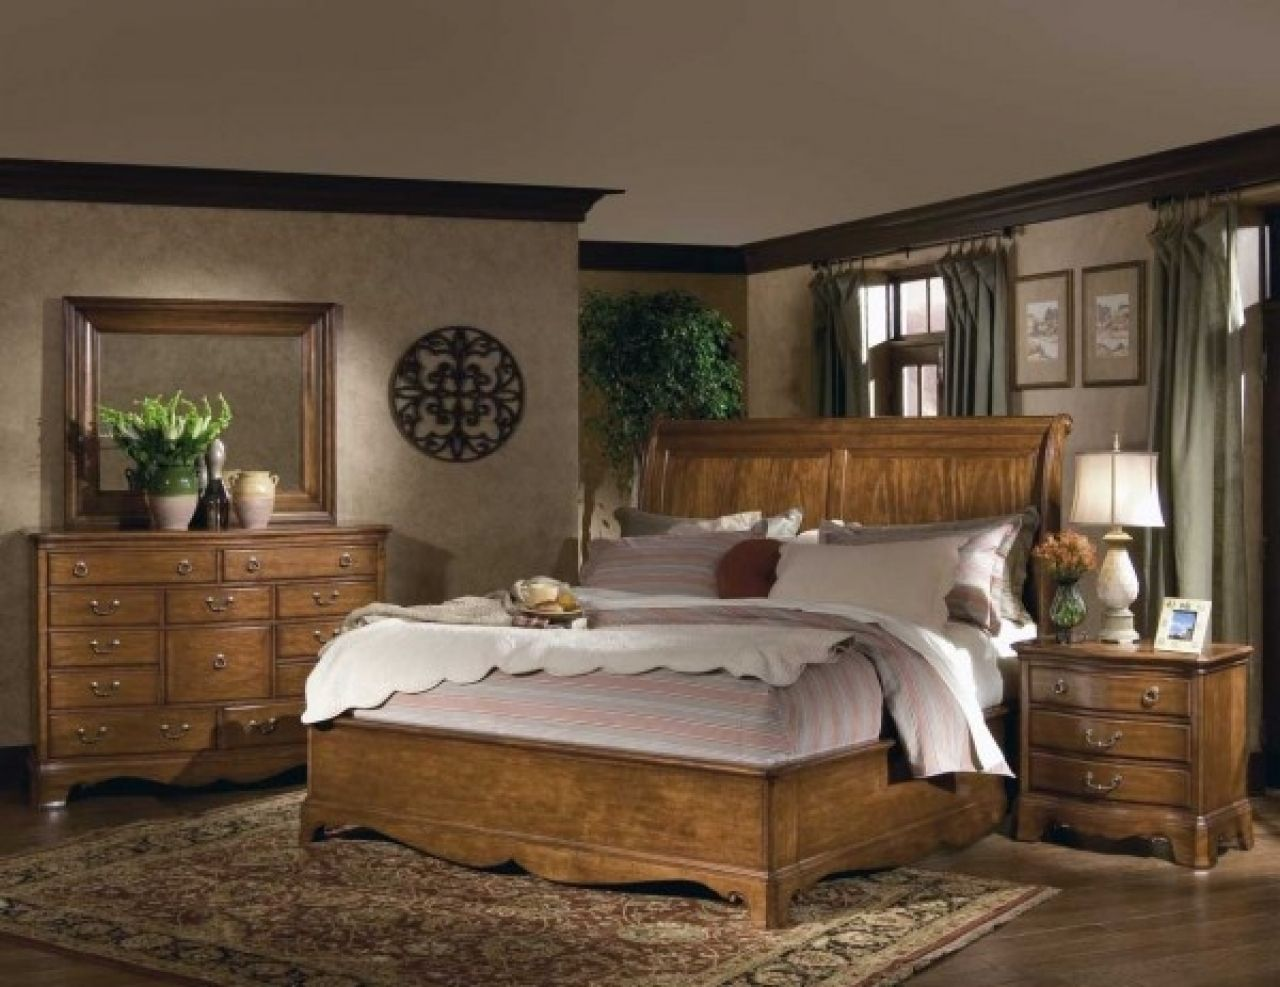 Bedroom furniture ethan allen | design ideas 2017-2018 | Pinterest ...